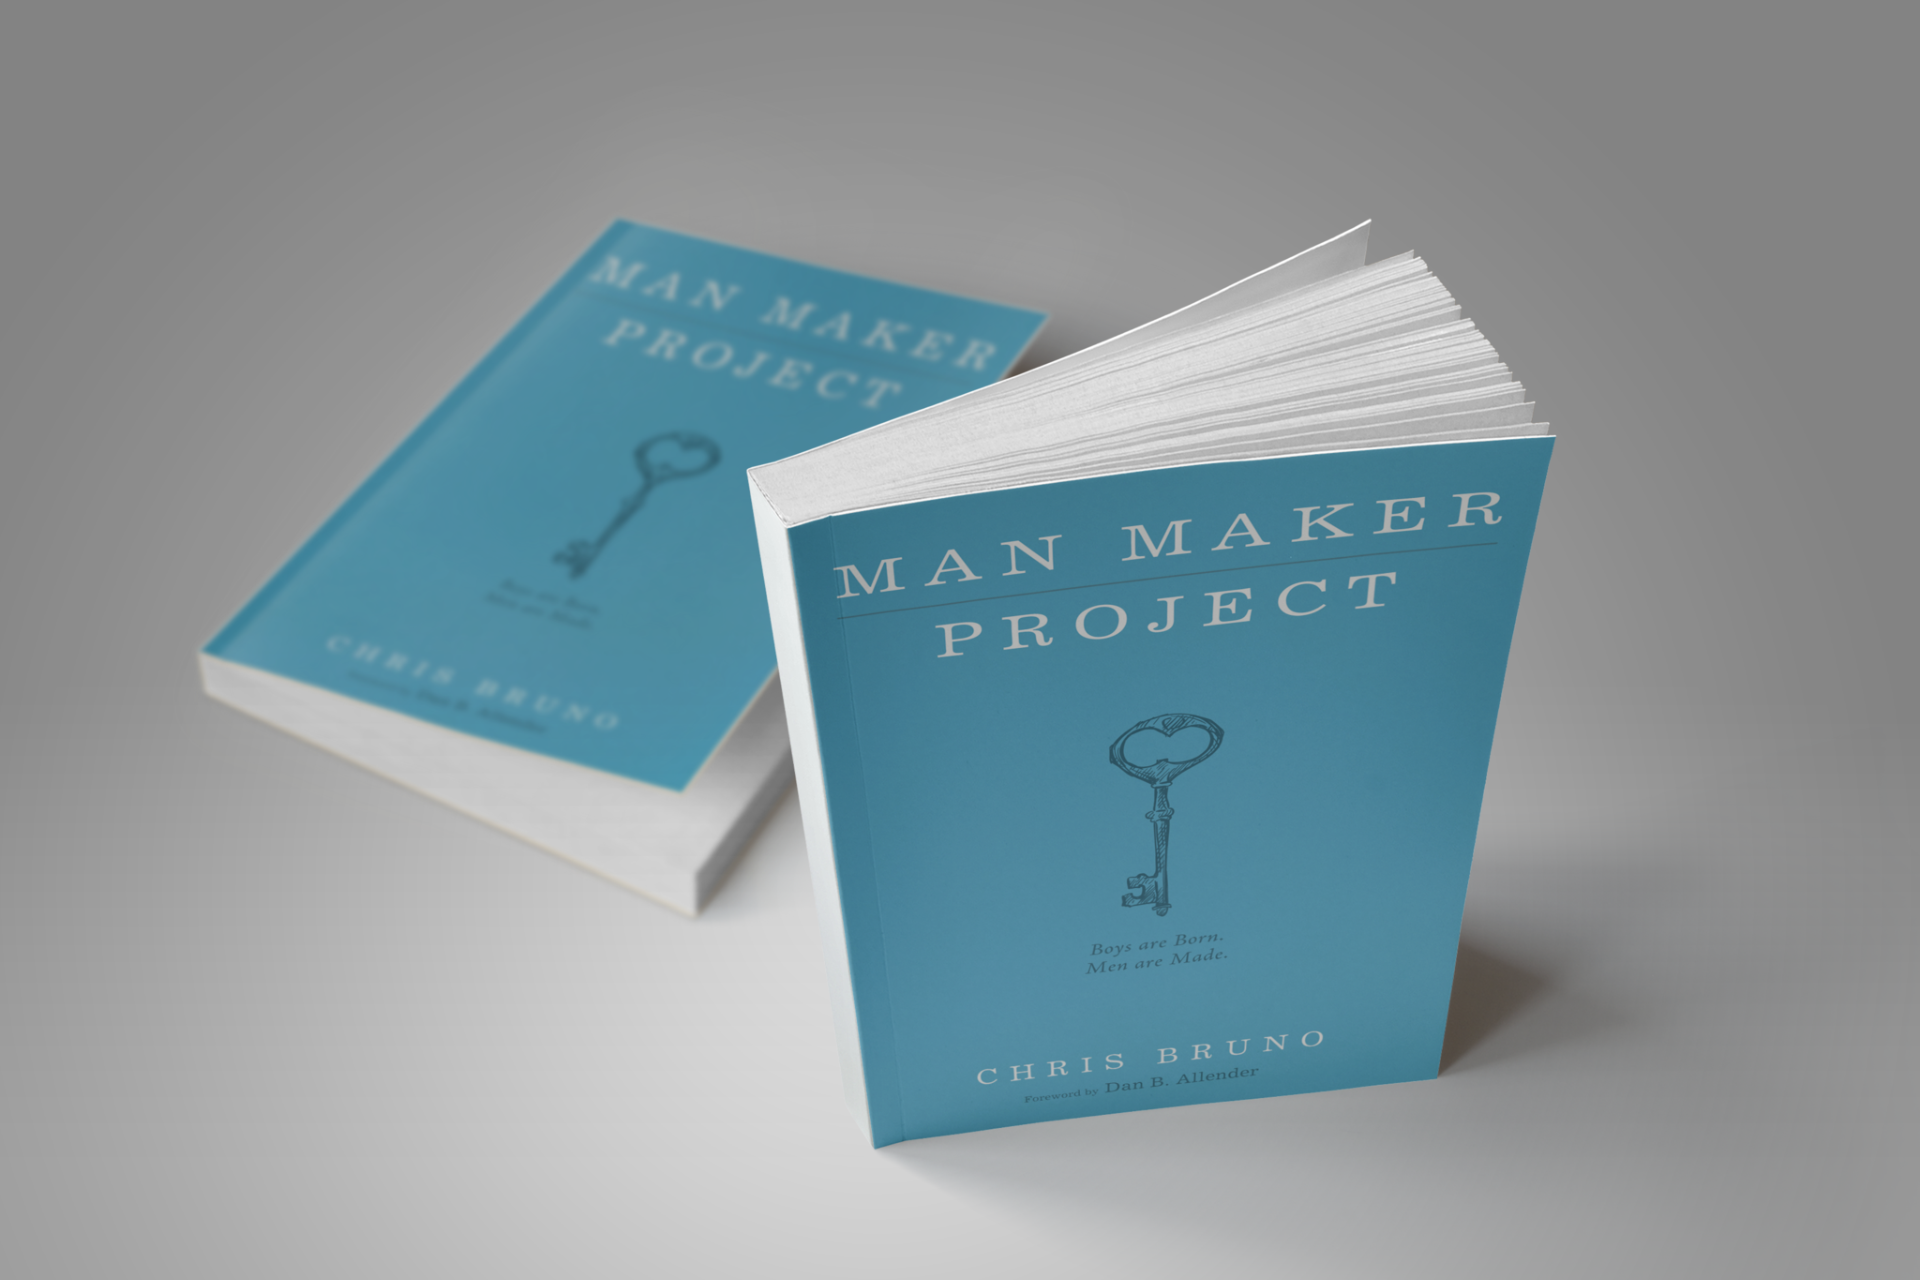 """Man Maker Project: Boys are Born. Men are Made - """"Father"""" is a verb, and fathering is the highest calling of God on men.Man Maker Projectis a guide for fathers to intentionally usher their sons into godly manhood. By Chris Bruno"""